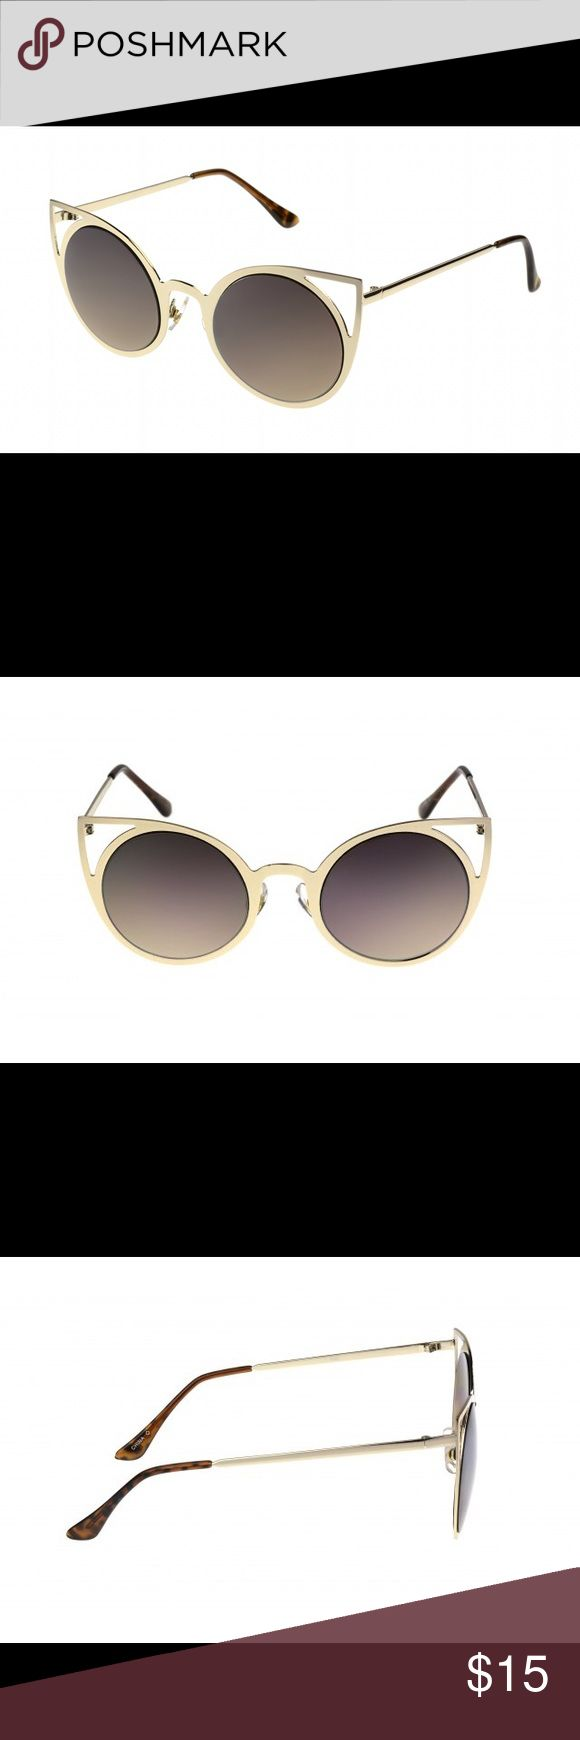 FOSTER GRANT NWOT CAT EYE CUT OUT SUNNIES Very cute and you get the quality of FOSTER GRANT sunglasses. Absolutely never worn. Only tried on for a split second. Foster Grant Accessories Glasses